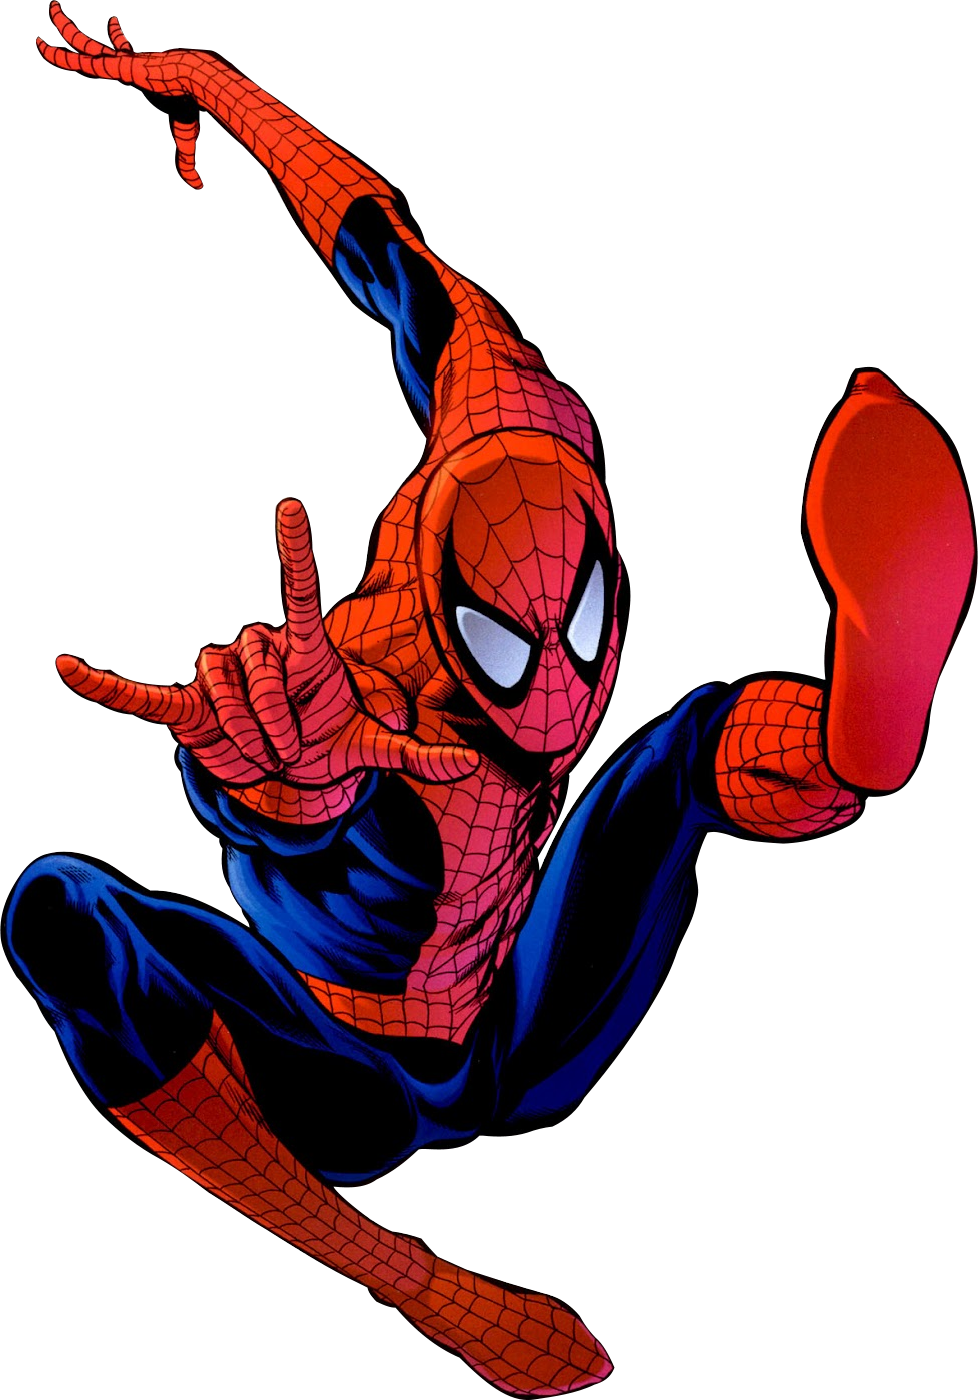 spiderman pictures images graphics for facebook whatsapp page 3